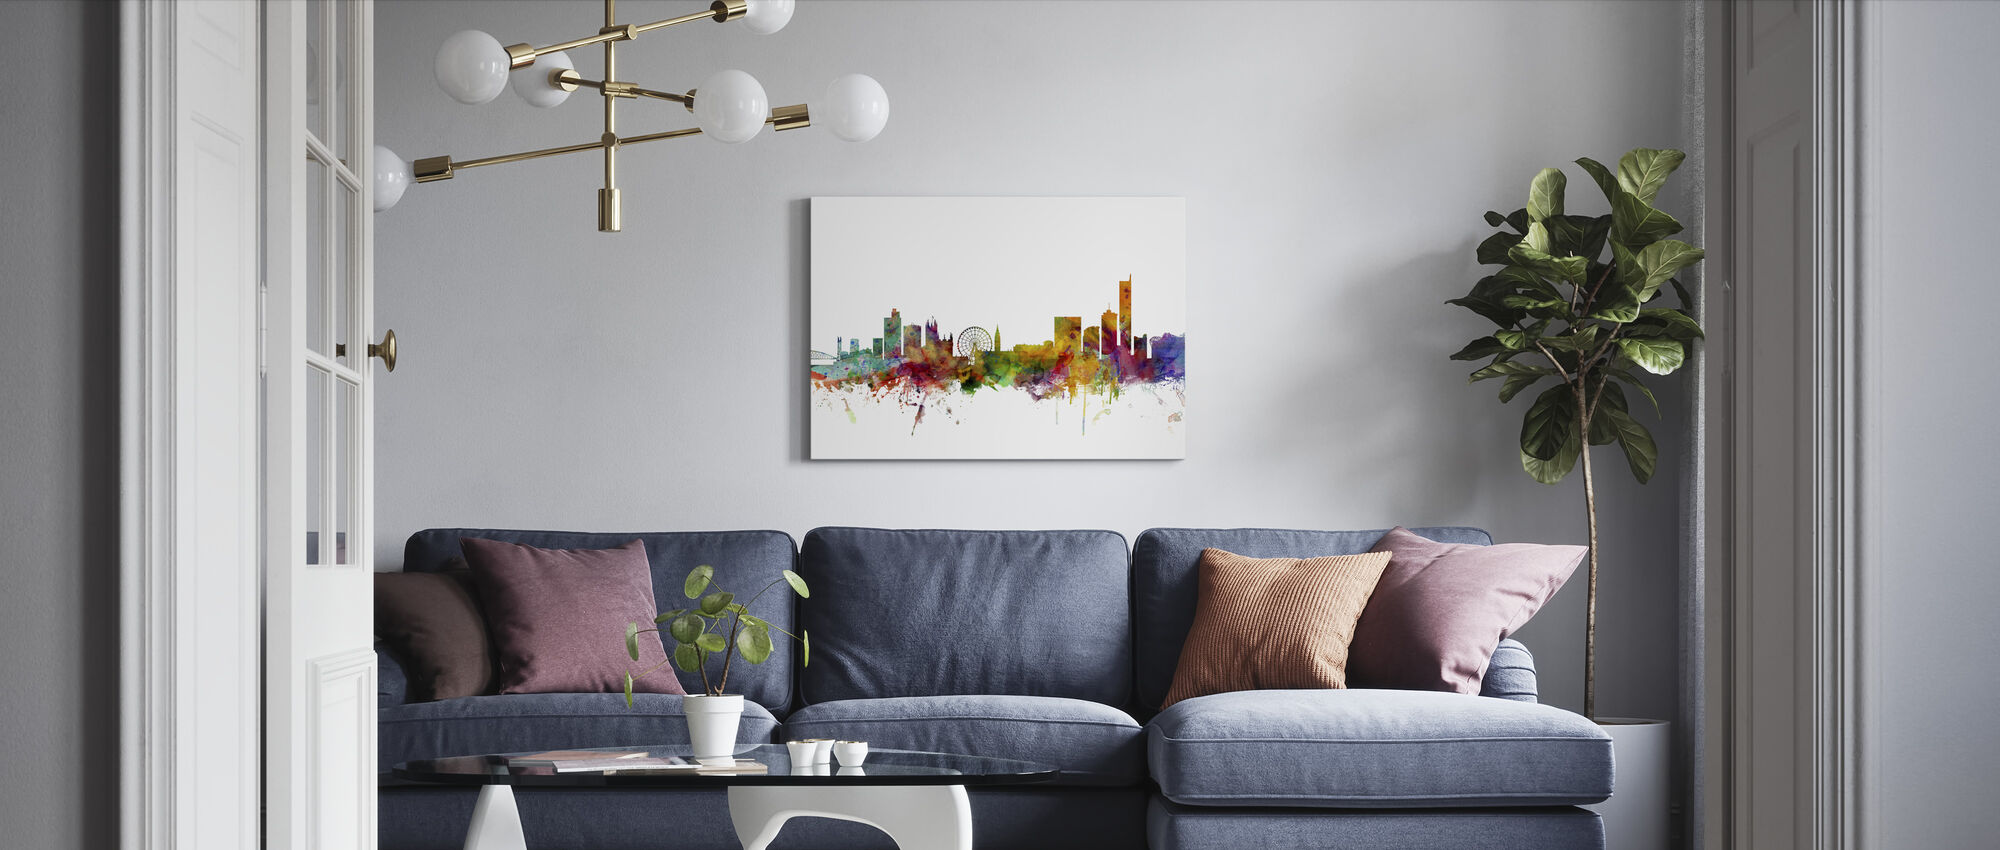 Manchester Skyline - Canvas print - Living Room